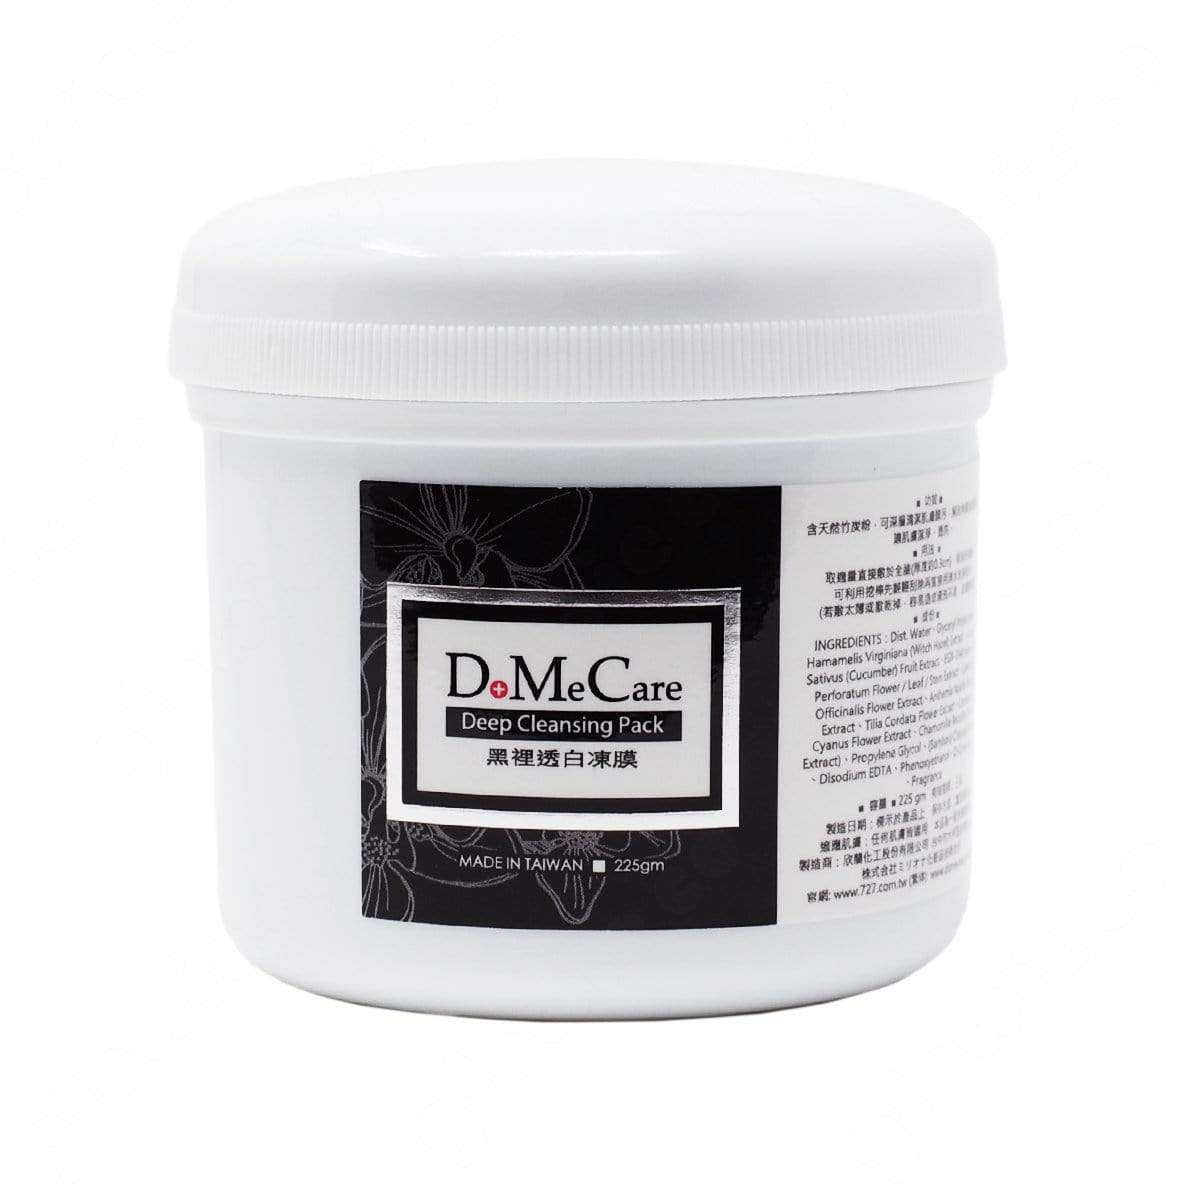 DMC (DoMeCare) Deep Cleaning Jelly Mask